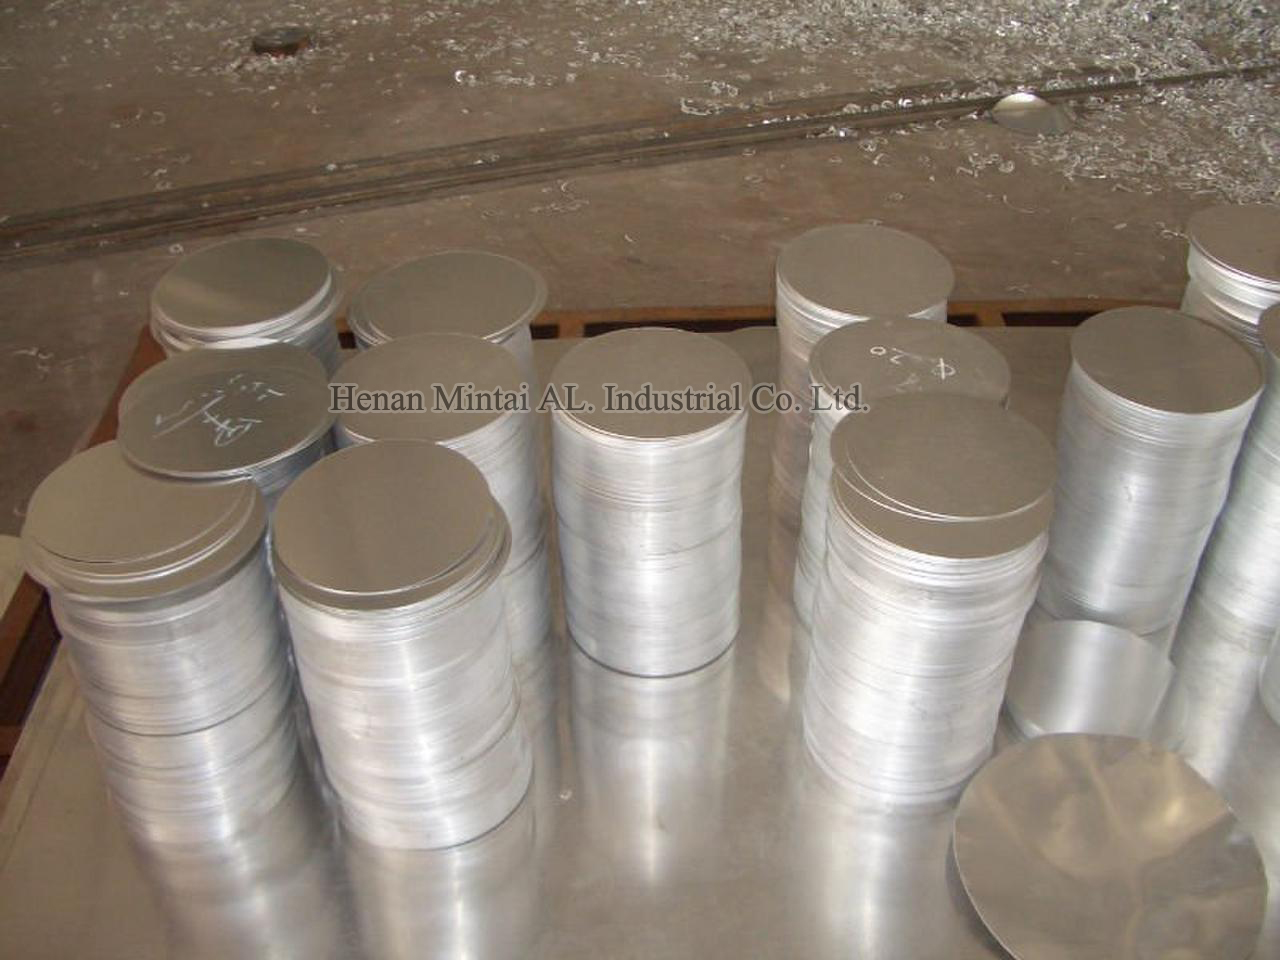 Aluminum circle for cooking utensils for Cuisine aluminium